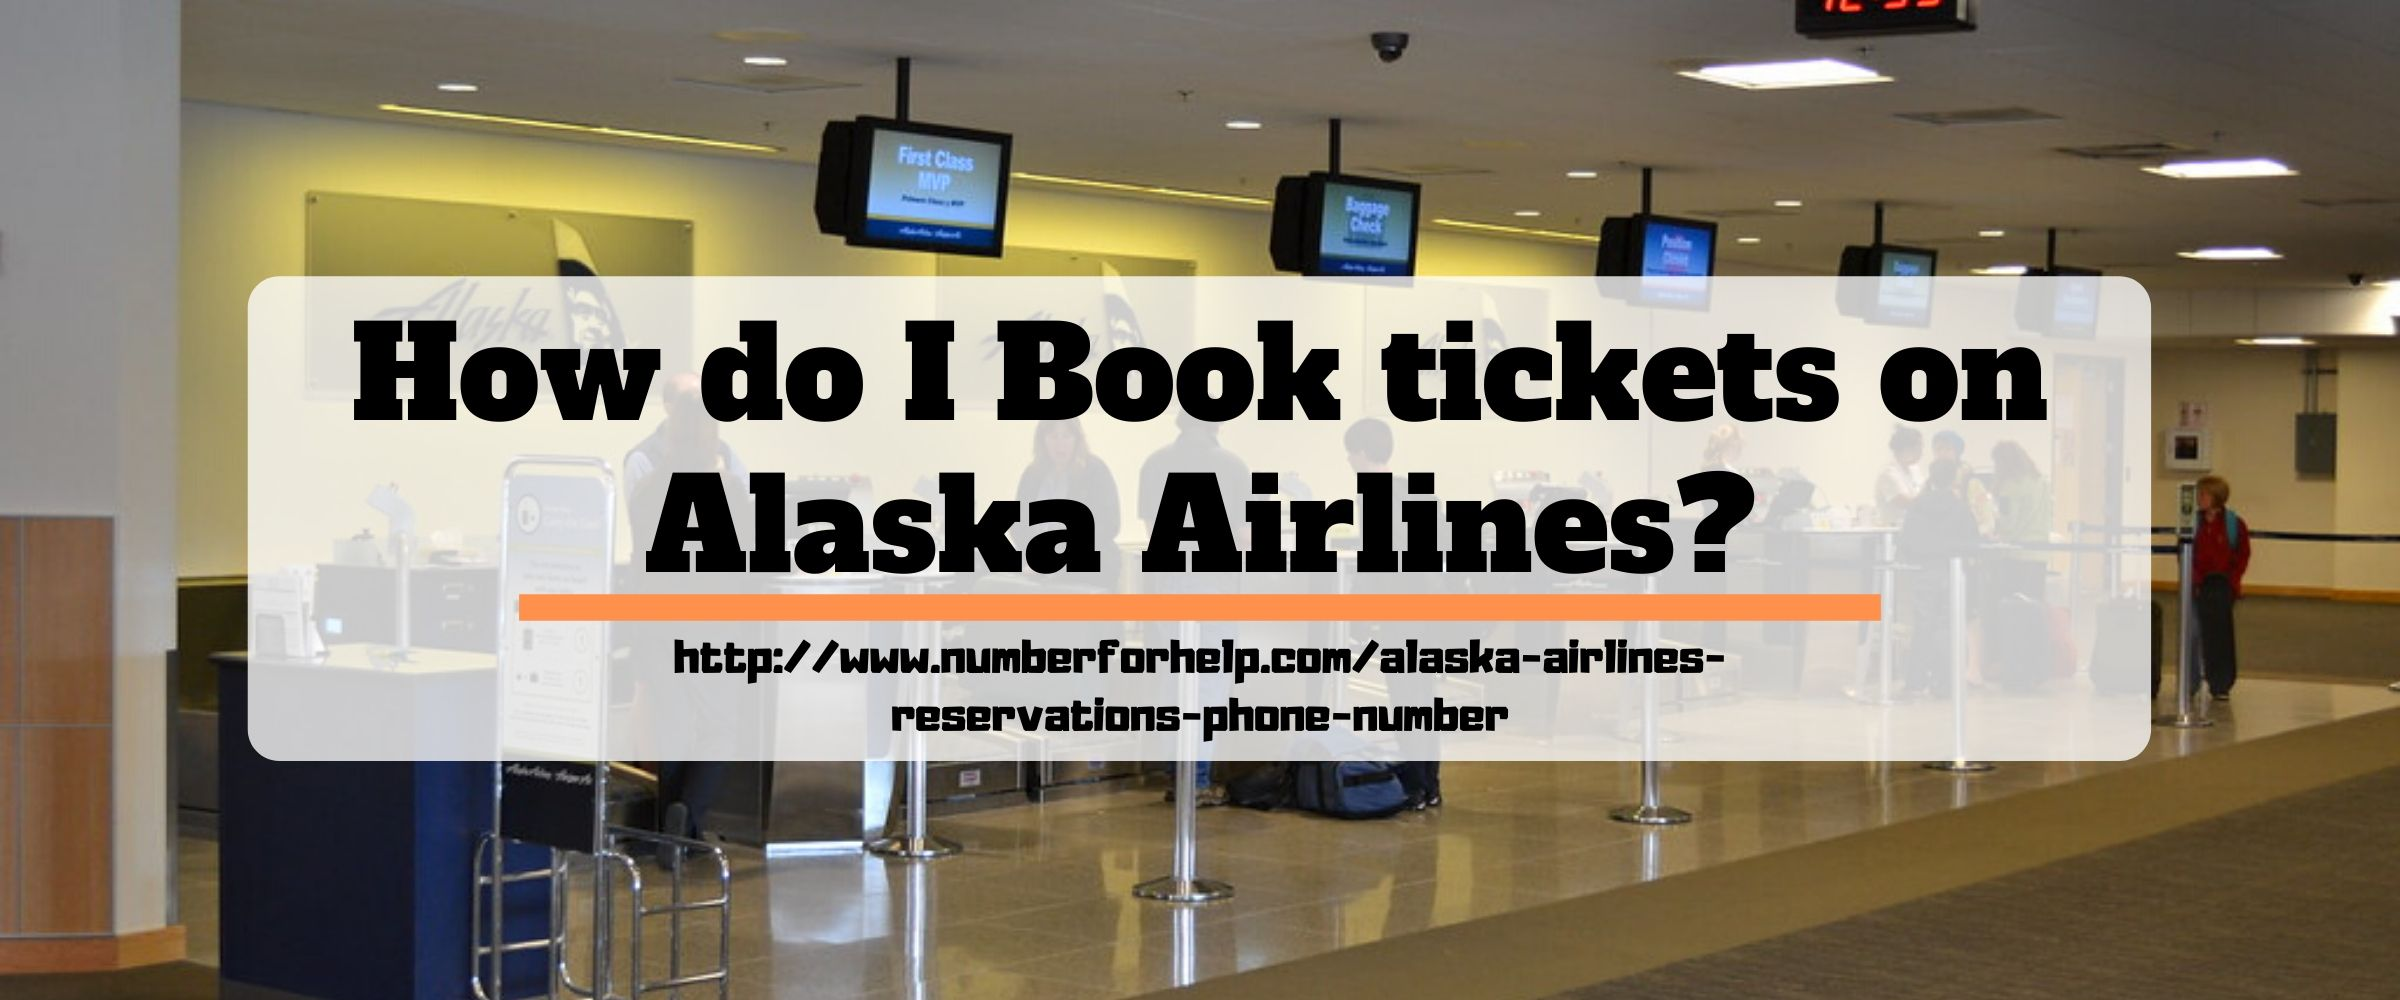 2019-11-14-11-02-19How do I Book tickets on Alaska Airlines_-min